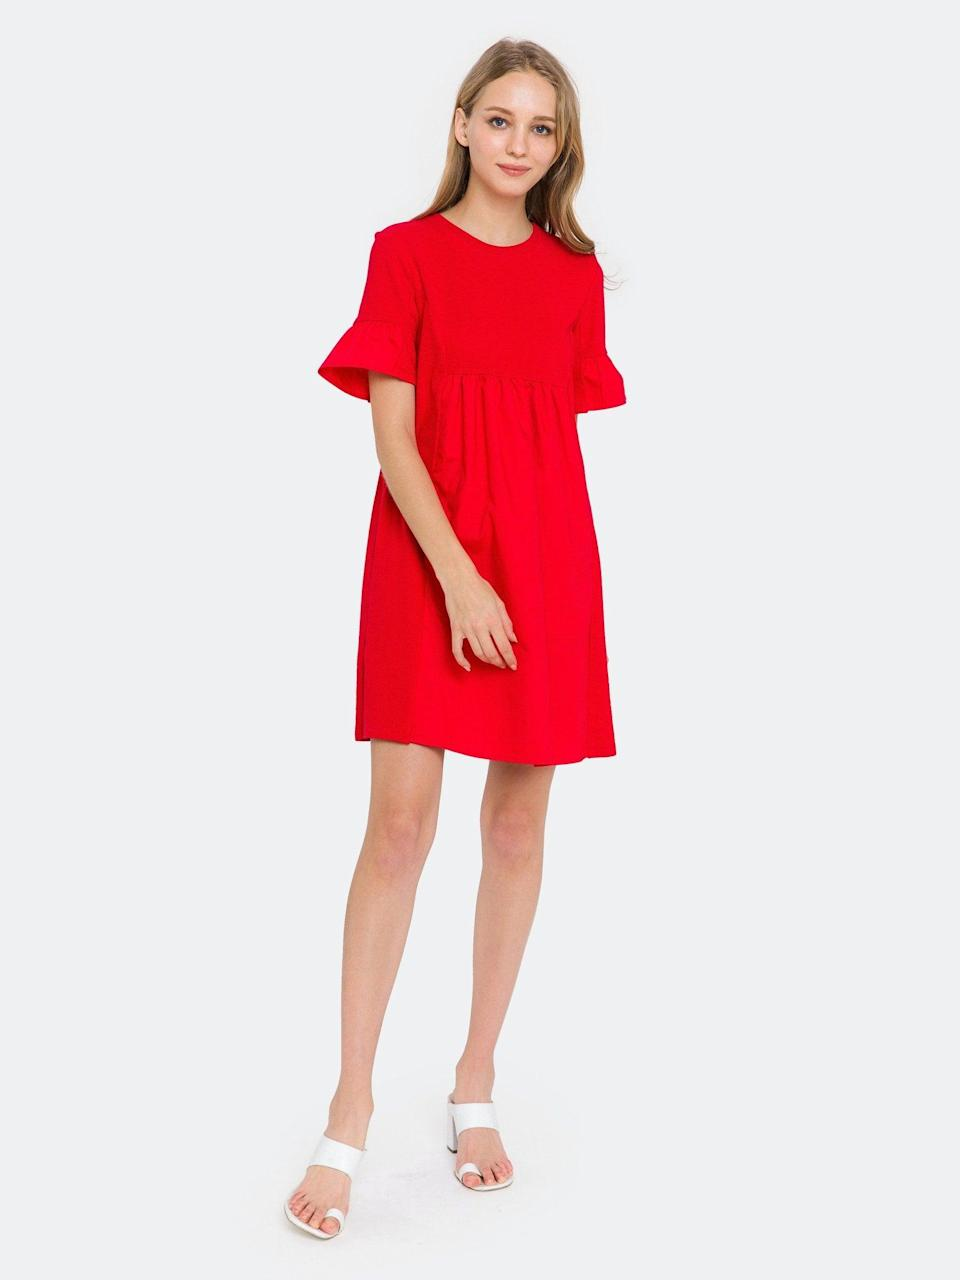 """<h2>Verishop English Factory Solid Mini Dress</h2>This cheerful cotton mini is our Verishop pick thanks to its brilliant vermillion hue. A predominantly-cotton composition always gets our vote — the sturdy fabrication will brighten up Zoom calls, survive weekend excursions, and can be thrown in the washing machine after you've worn it for five days straight.<br><br><strong>English Factory</strong> Solid Mini Dress, $, available at <a href=""""https://go.skimresources.com/?id=30283X879131&url=https%3A%2F%2Fwww.verishop.com%2Fenglish-factory%2Fdresses%2Fsolid-mini-dress%2Fp4472247615511%3Fcolor%3Dred"""" rel=""""nofollow noopener"""" target=""""_blank"""" data-ylk=""""slk:Verishop"""" class=""""link rapid-noclick-resp"""">Verishop</a>"""